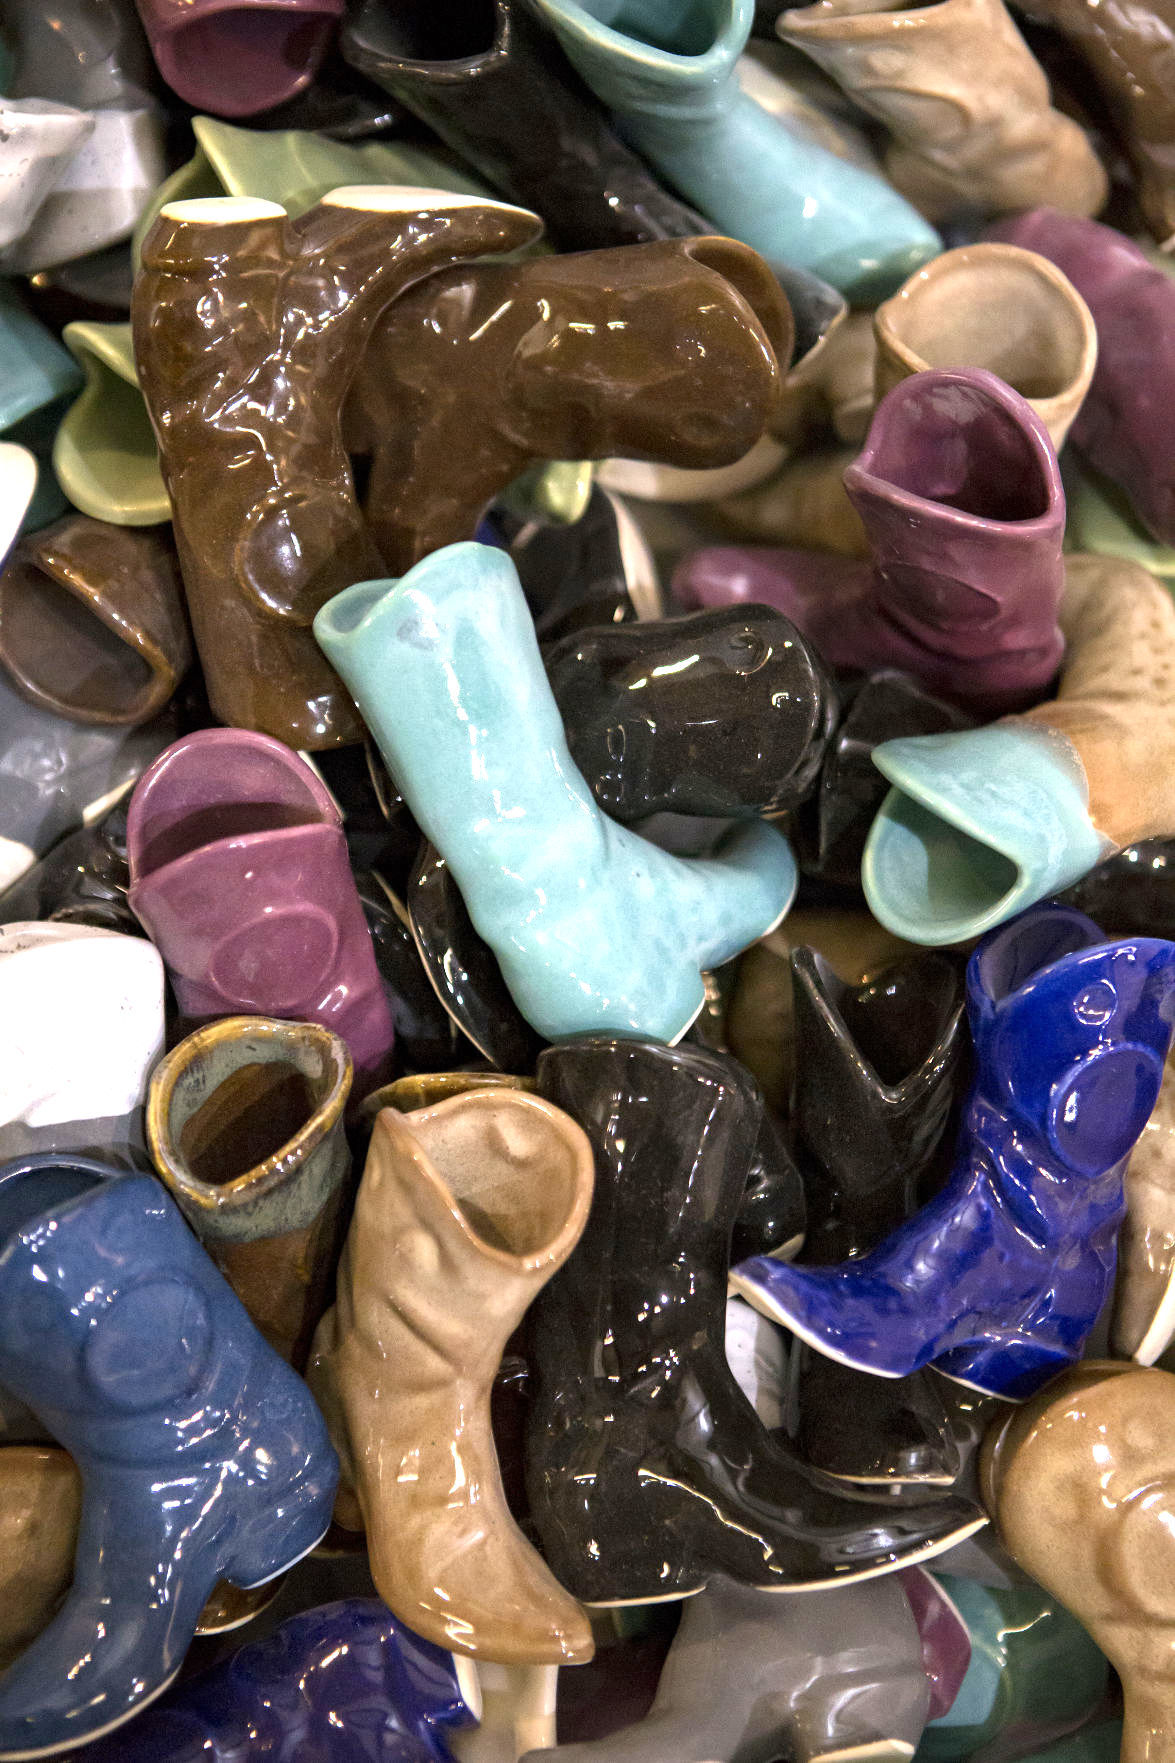 Ceramic cowboy boots sit in a bin for sale at Clay in Motion.